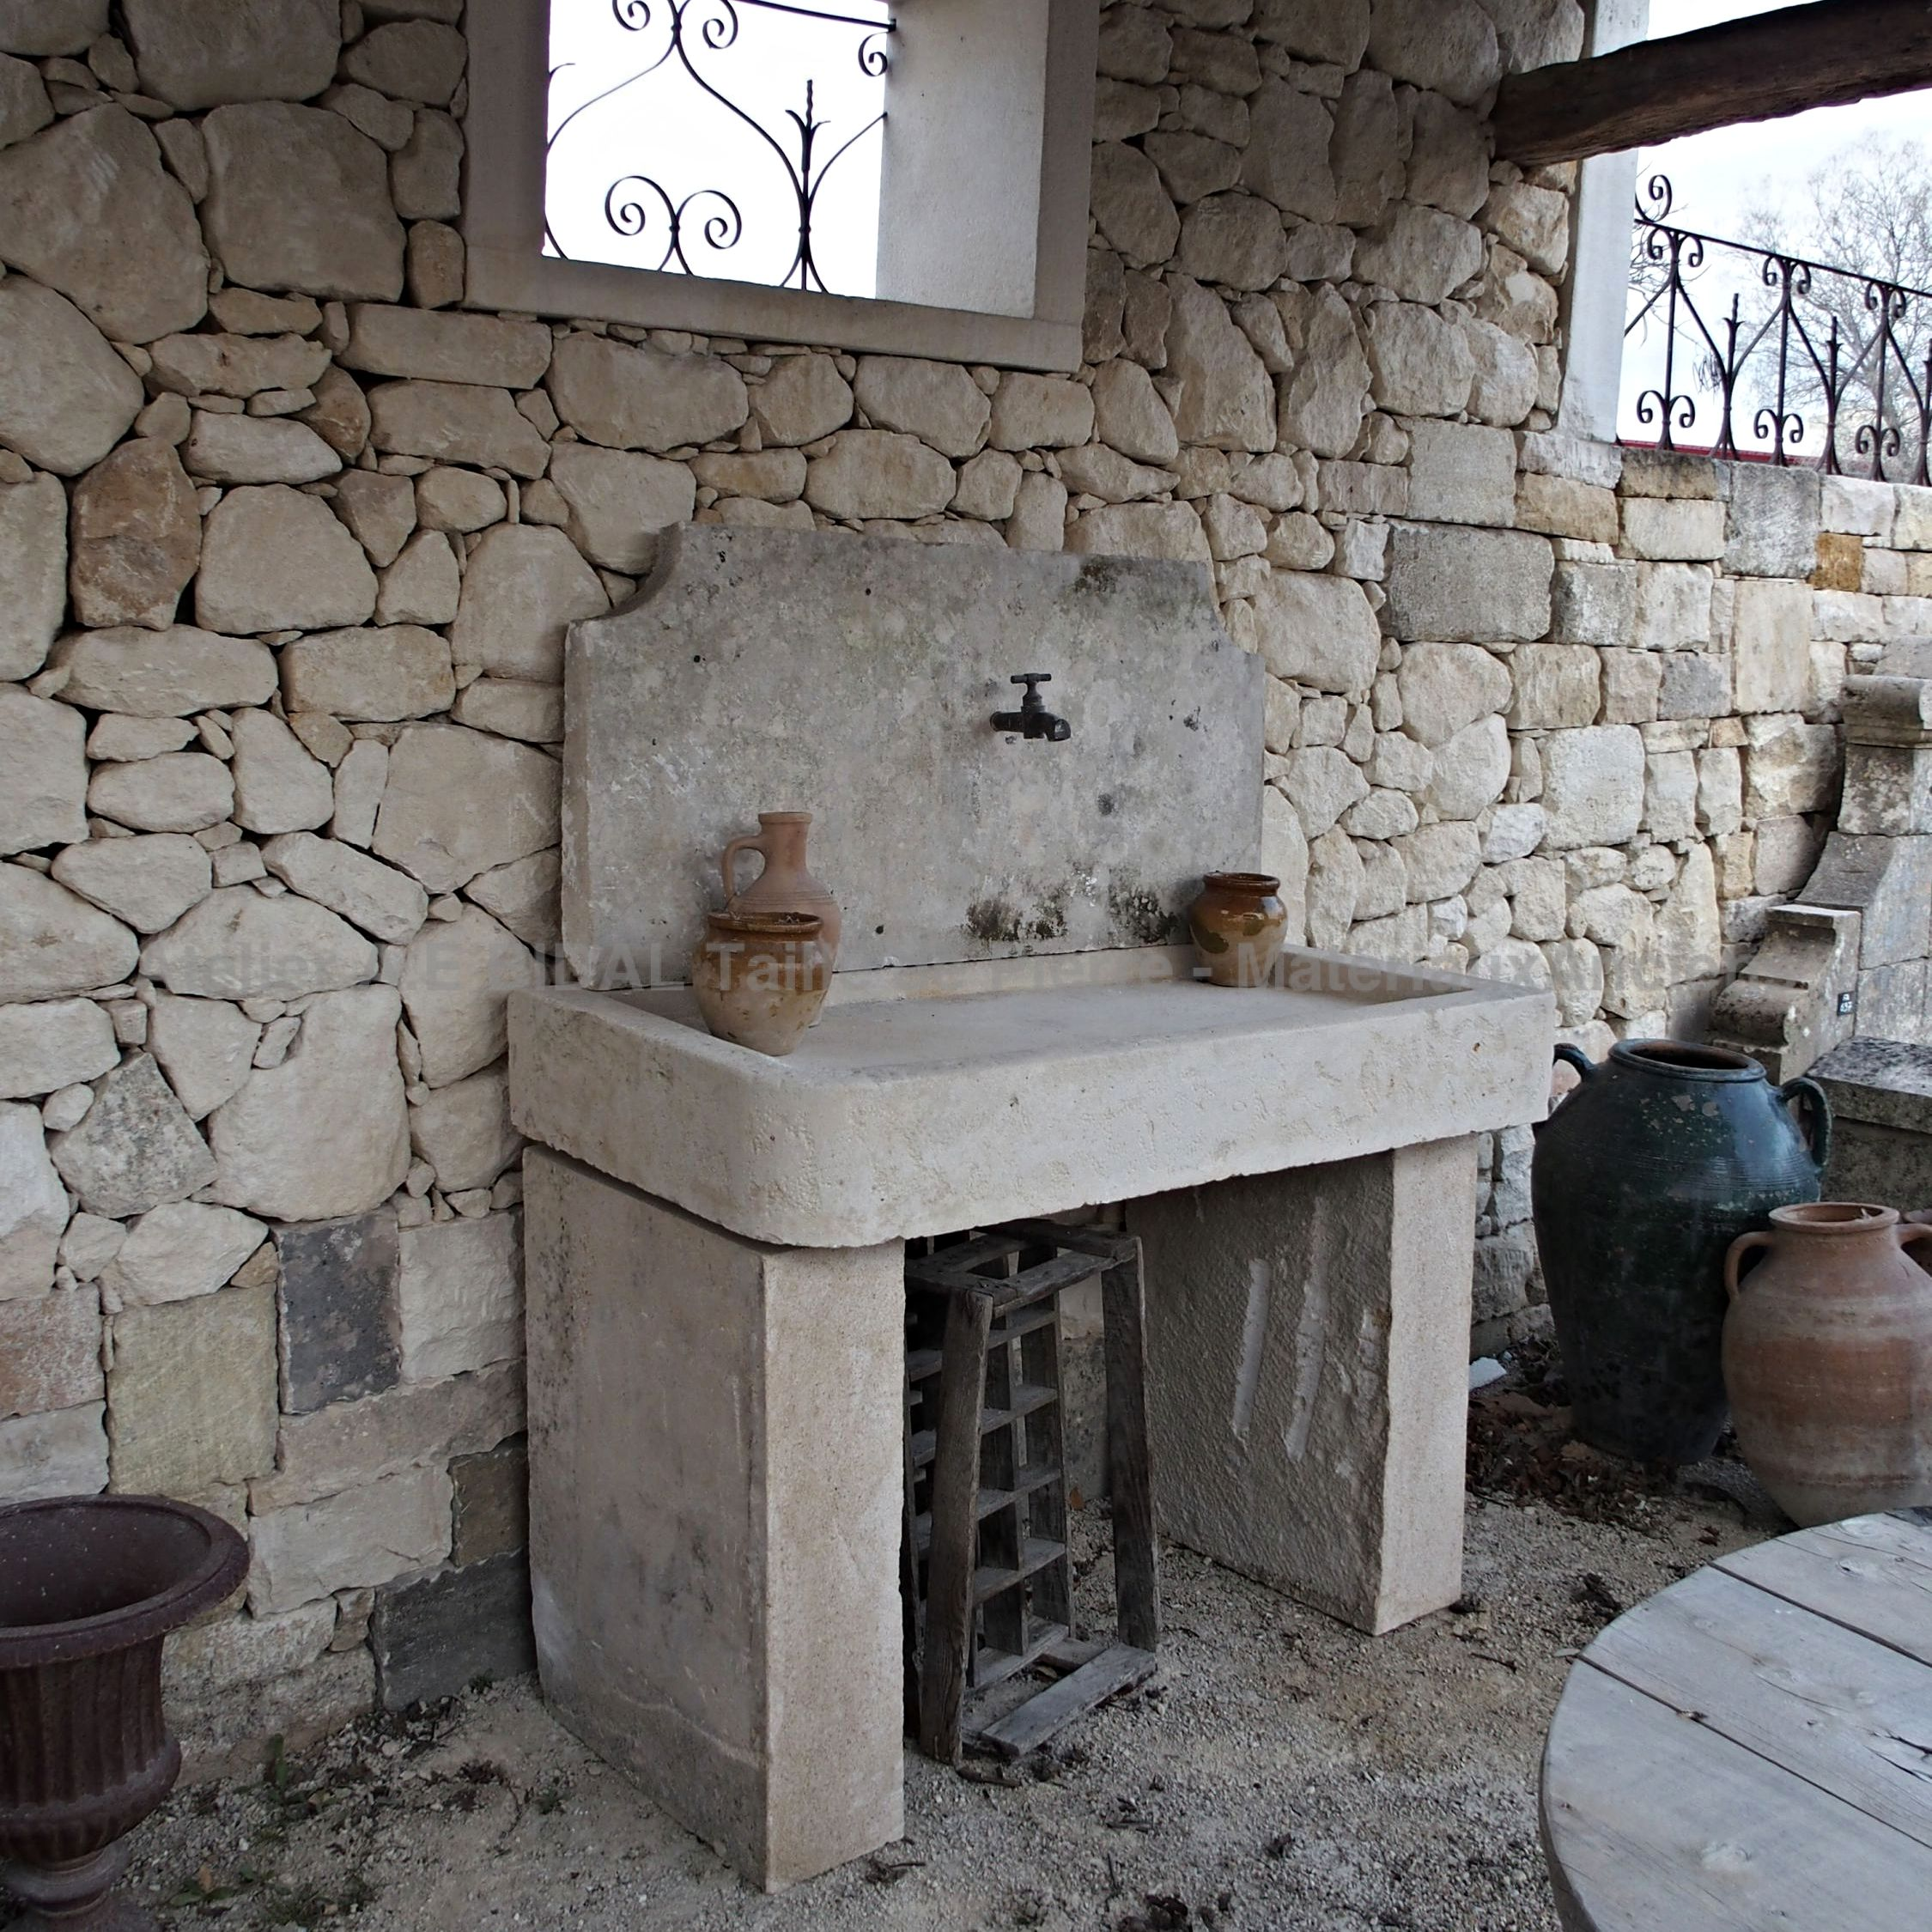 Summer kitchen made of natural stone - a summer kitchen a little over 1m50 high for 1m30 wide.